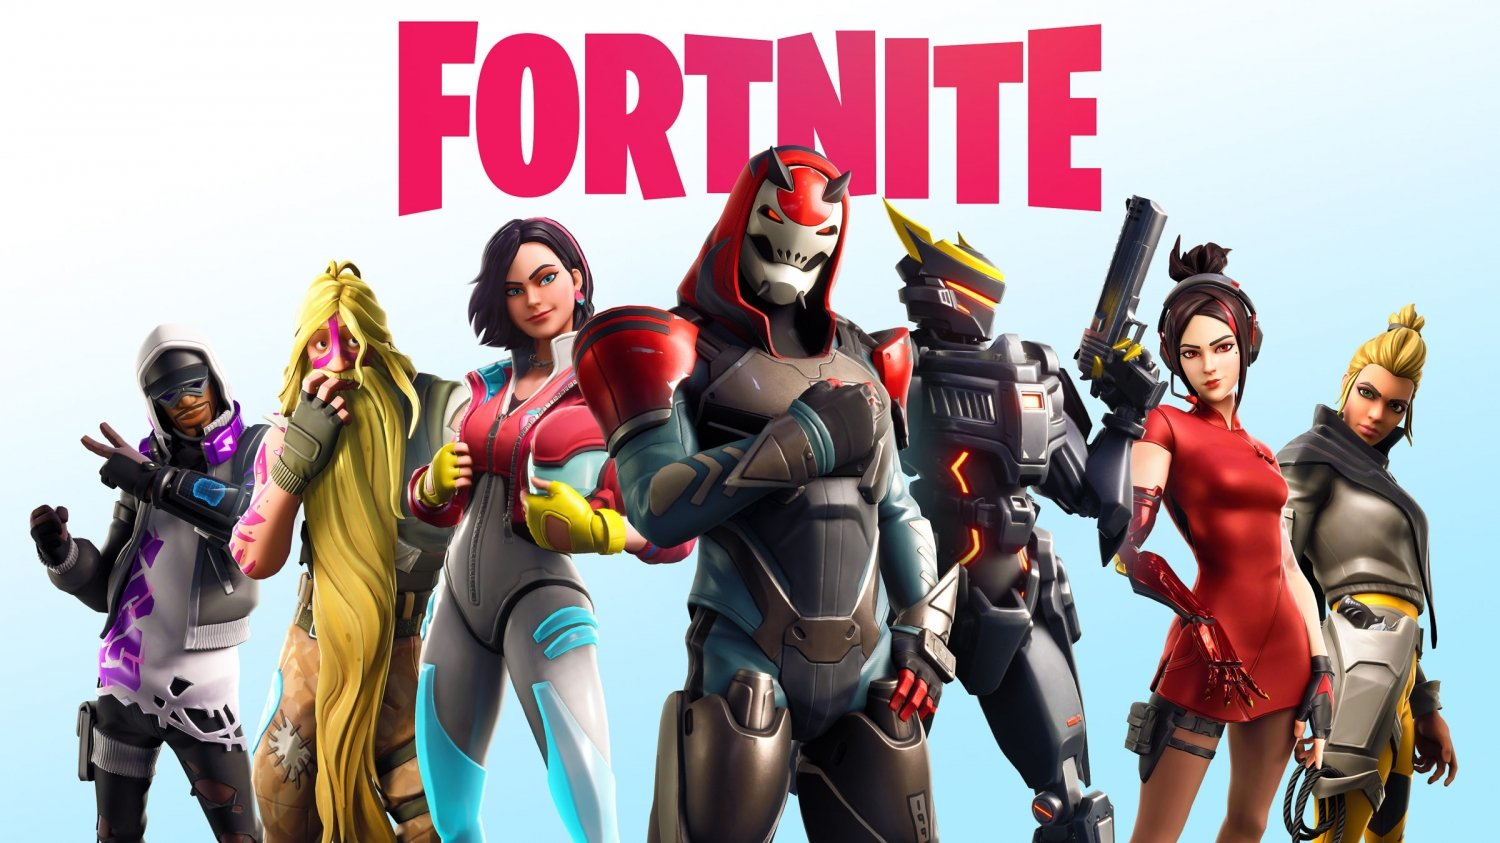 Fortnite's new event and season get delayed over George Floyd protests